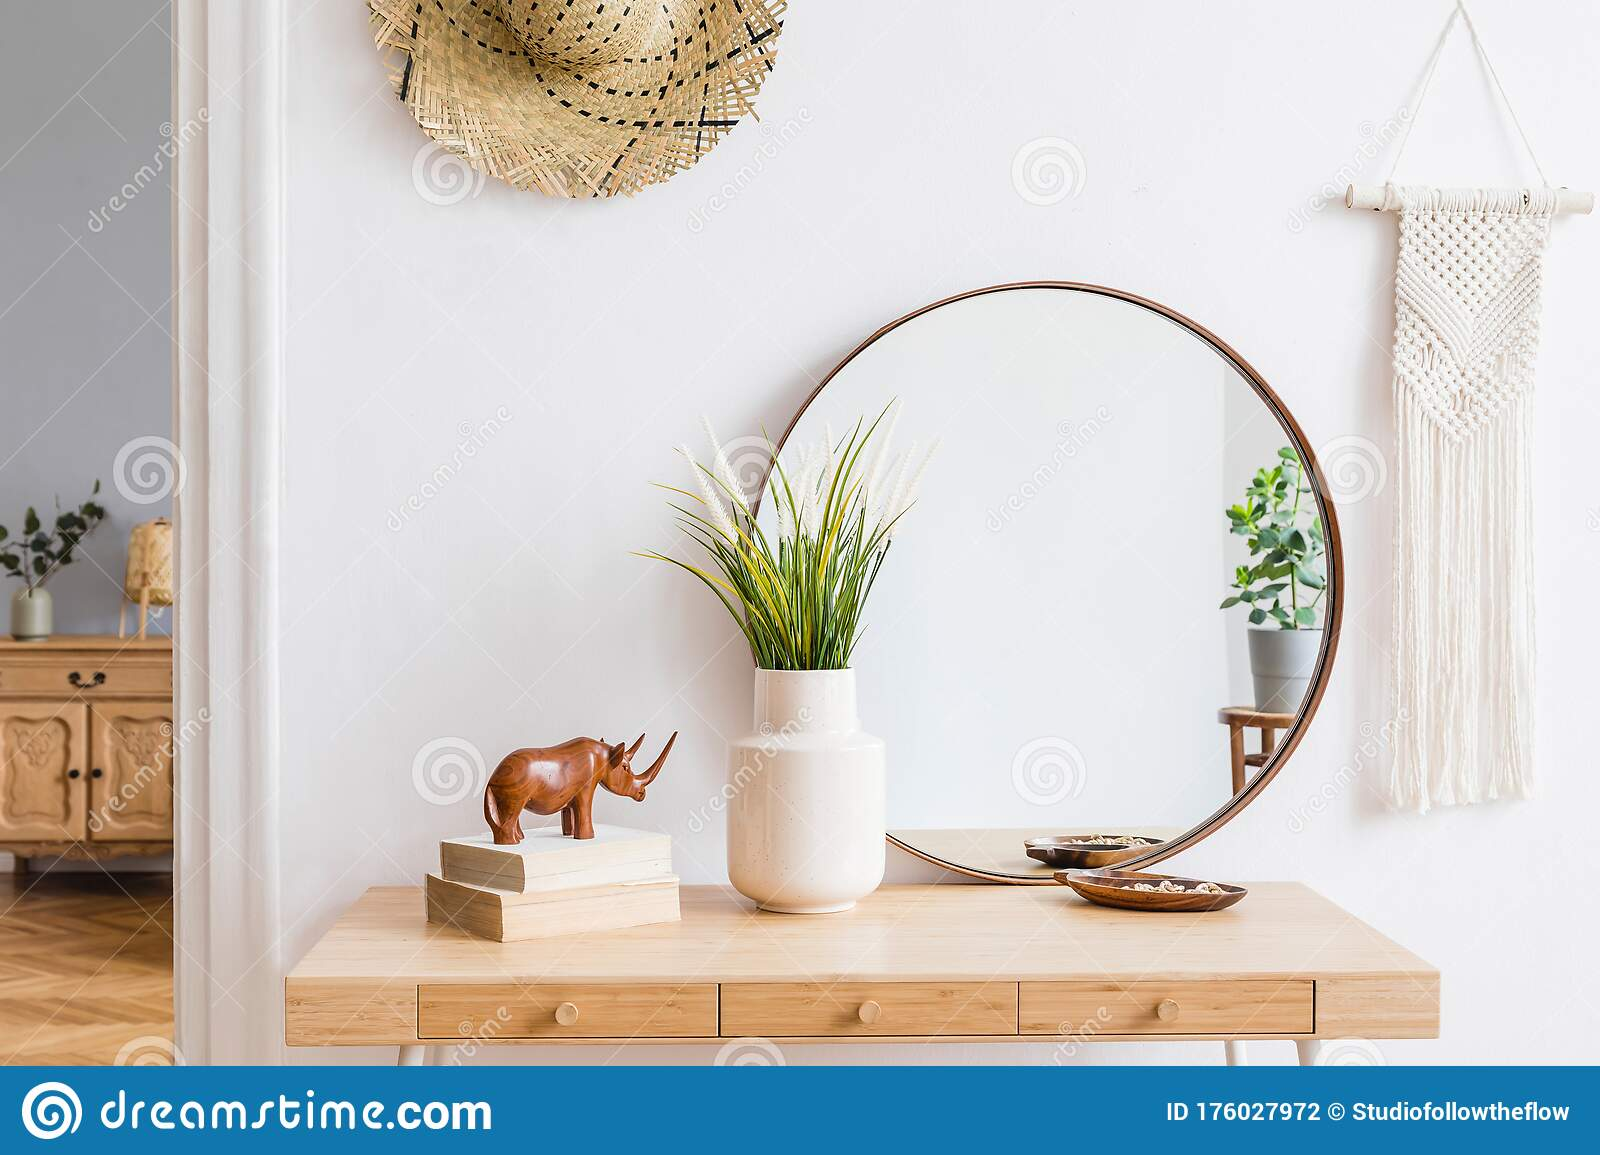 Boho Interior Design Of Home Office With Large Round Mirror Stock Photo Image Of Close Flat 176027972